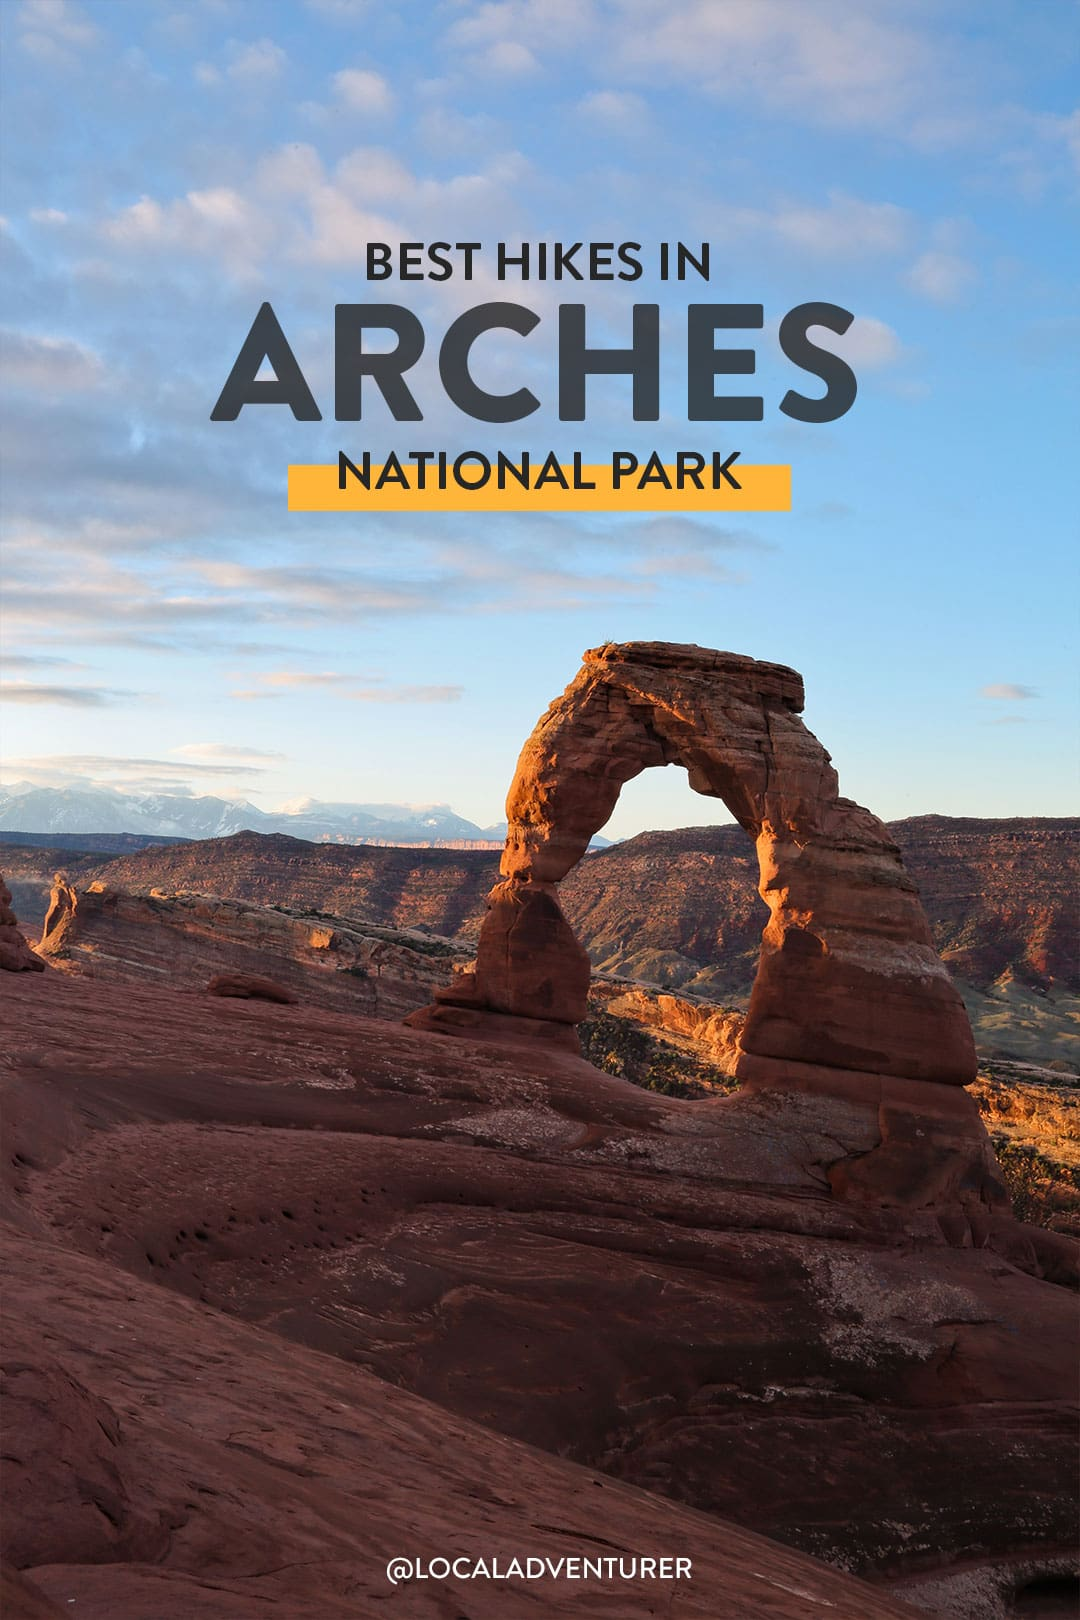 11 Best Hikes in Arches National Park